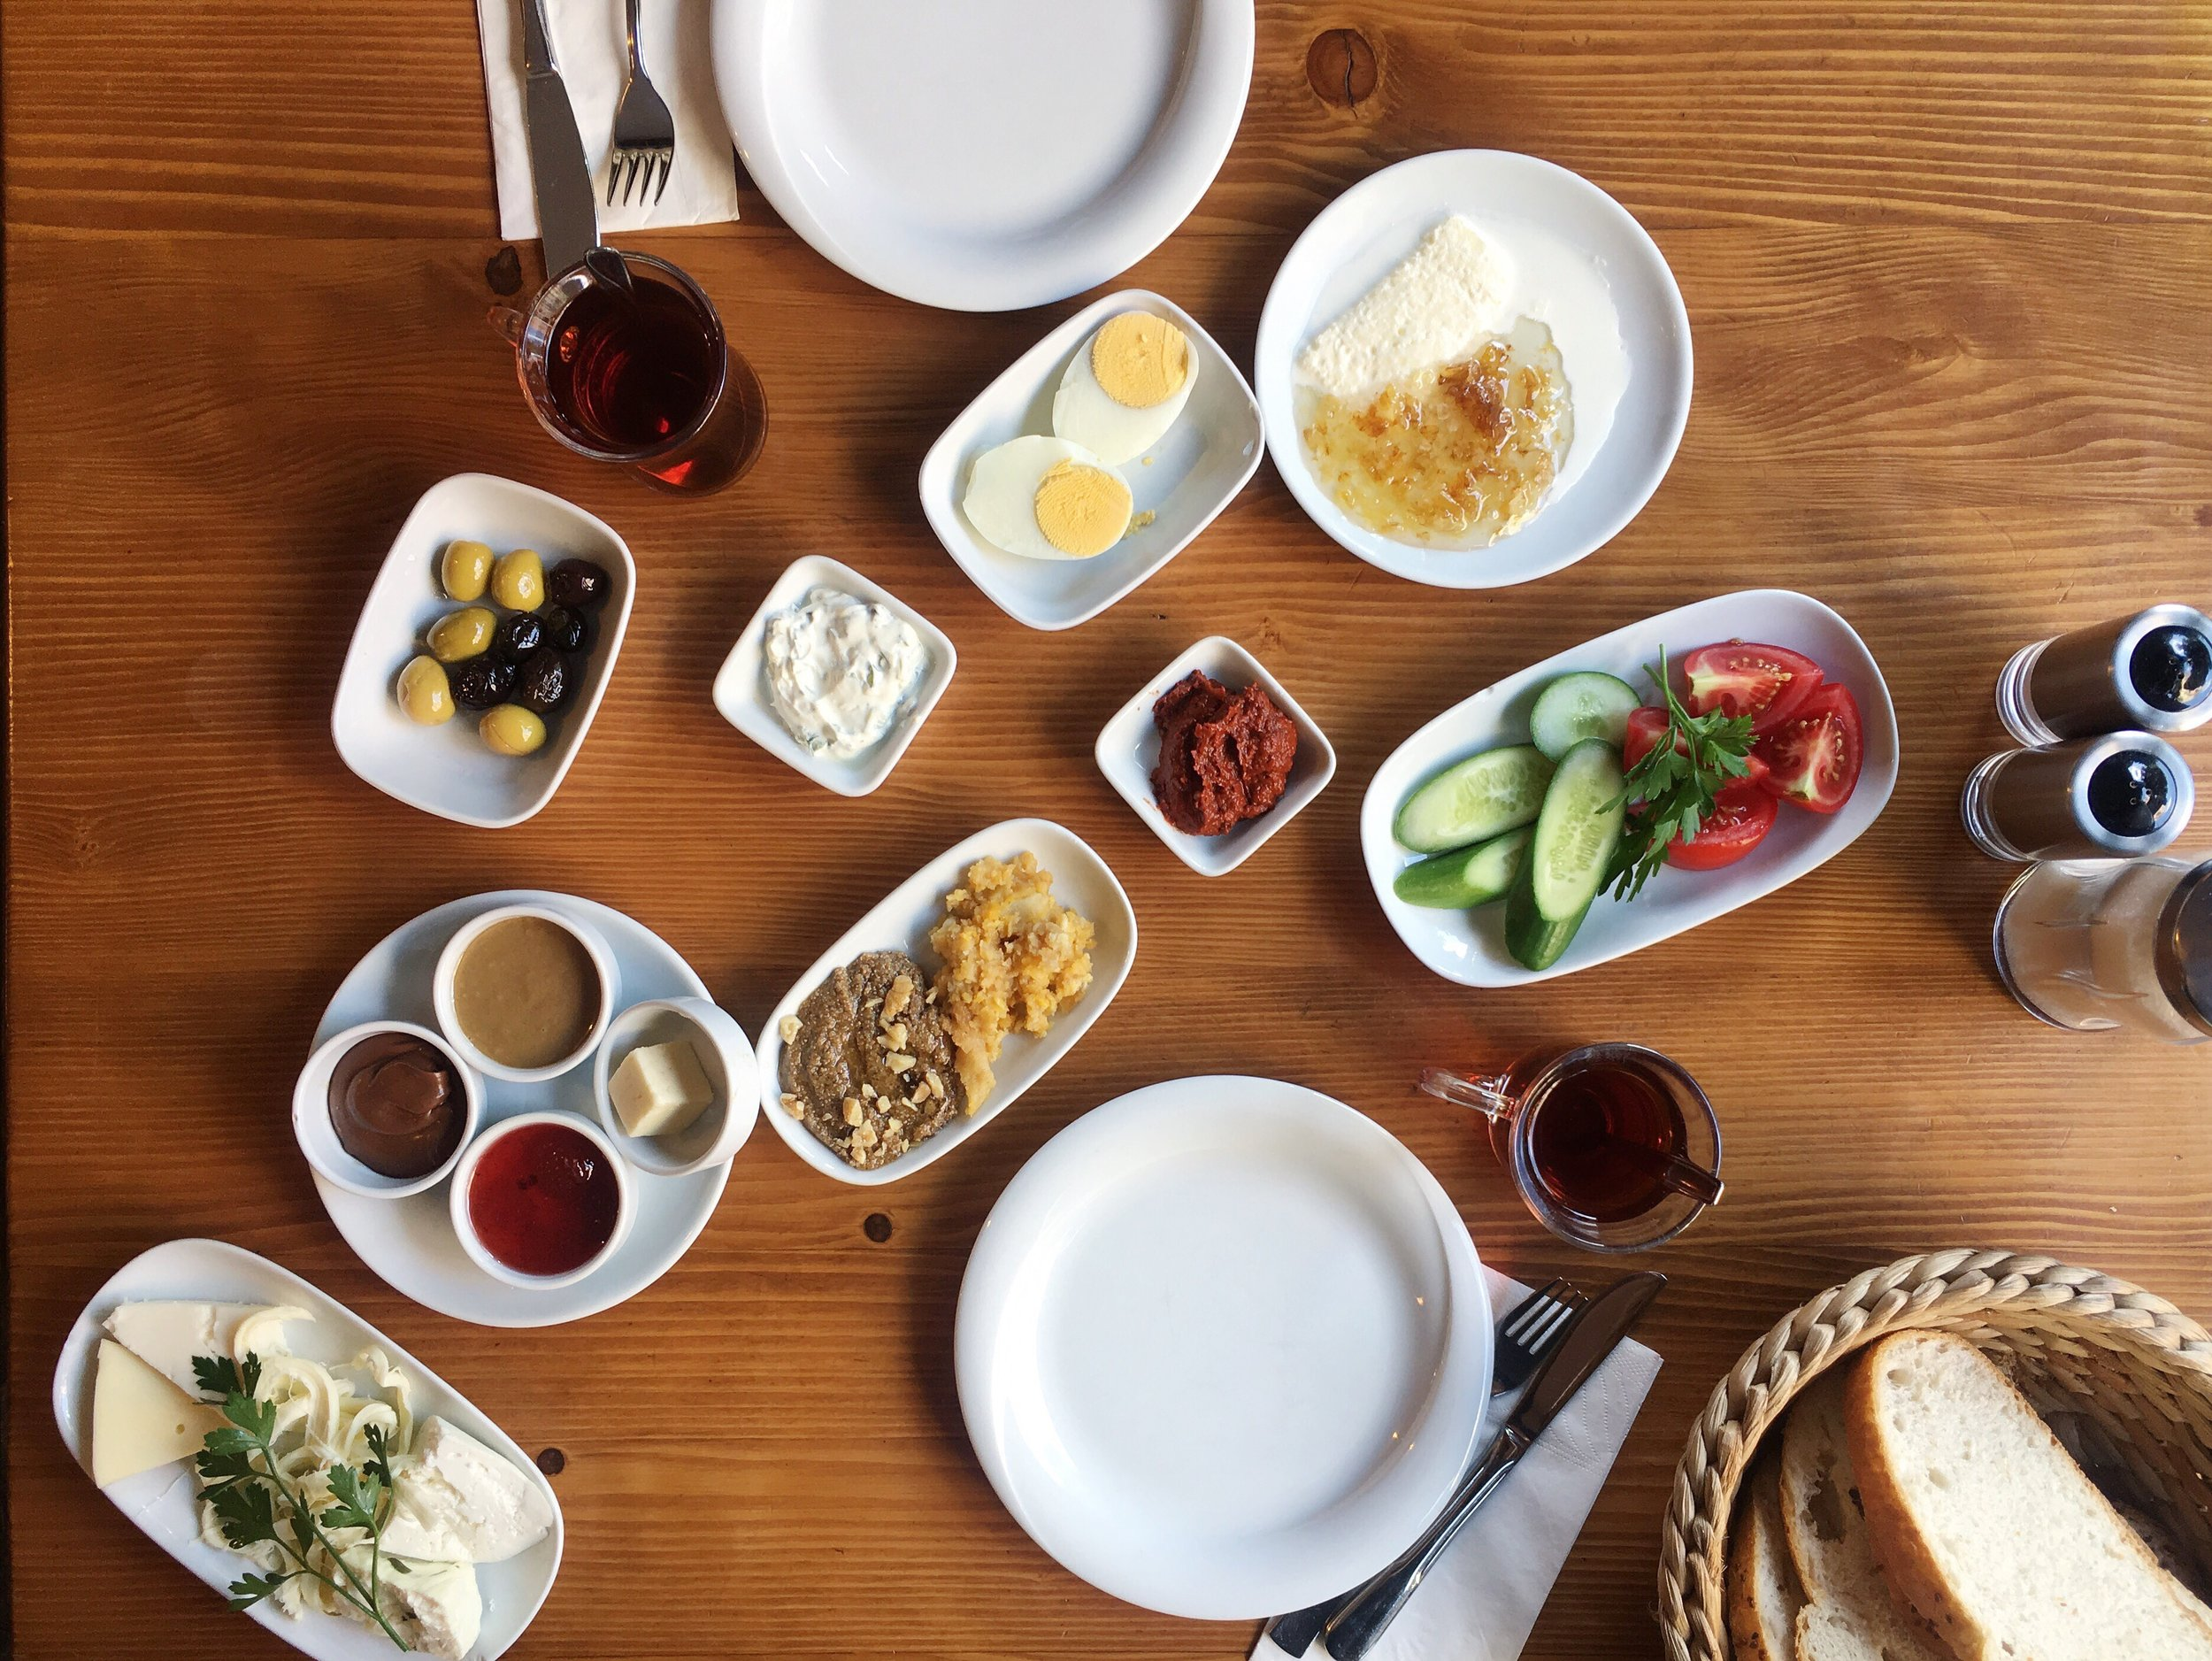 Breakfast at Van Kahvaltı Evi - I pride myself in making elaborate breakfasts for myself daily, but Turks are on another level. A table full of delicious spreads, local honey, and cheeses and refills of turkish tea. It is so so good. Visit Van Kahvaltı Evi